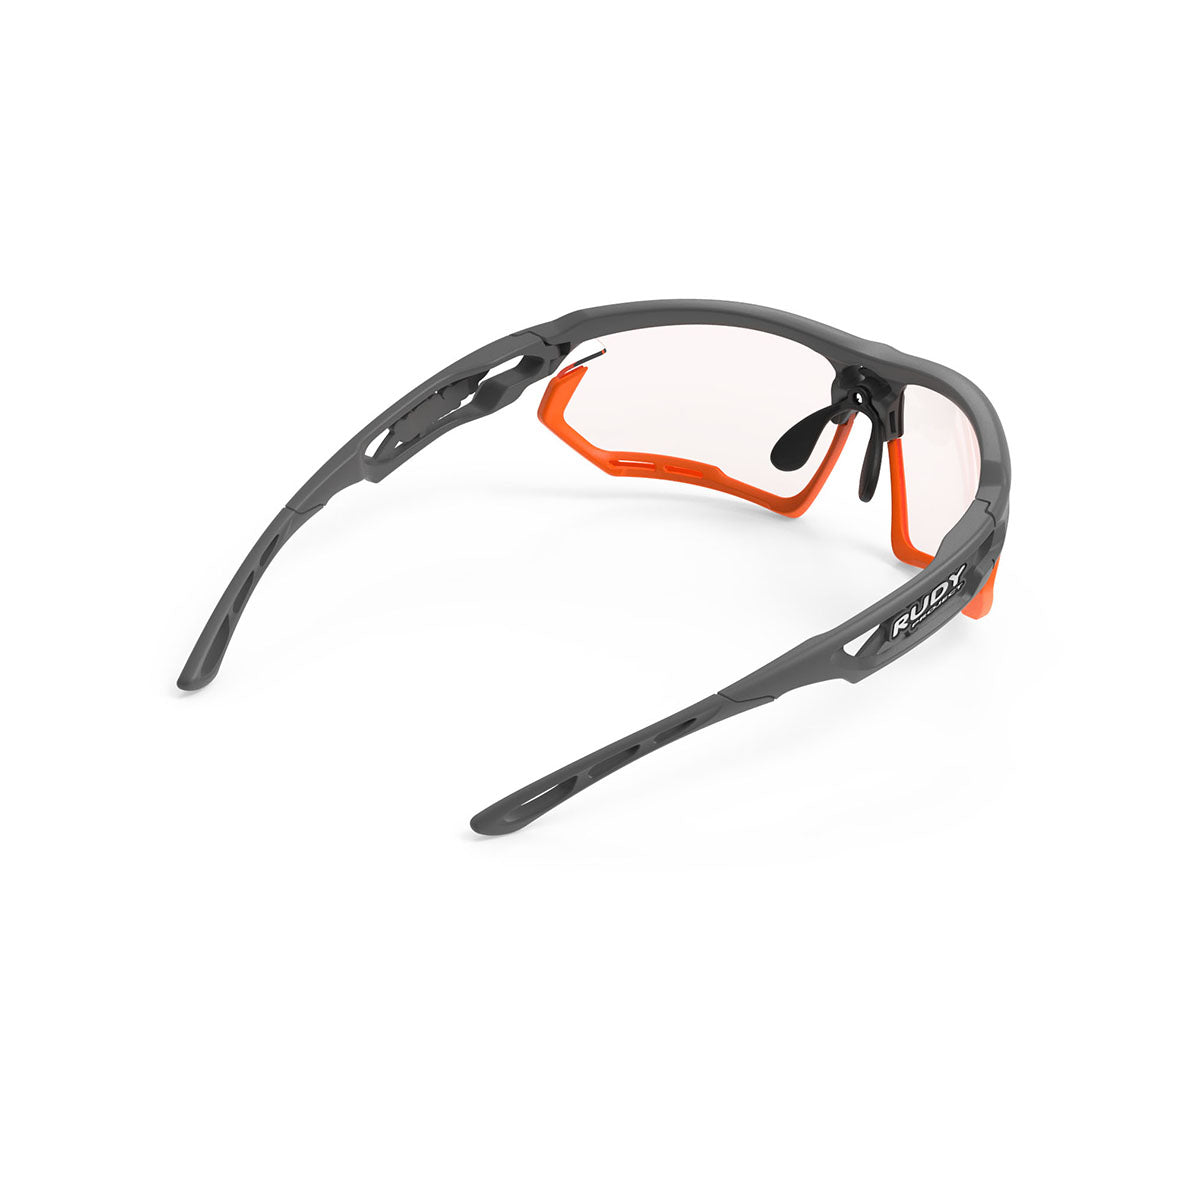 Rudy Project - Fotonyk - frame color: Pyombo Matte - lens color: ImpactX-2 Photochromic Clear to Red - Bumper Color: Mandarin - photo angle: Top Back Angle Variant Hover Image